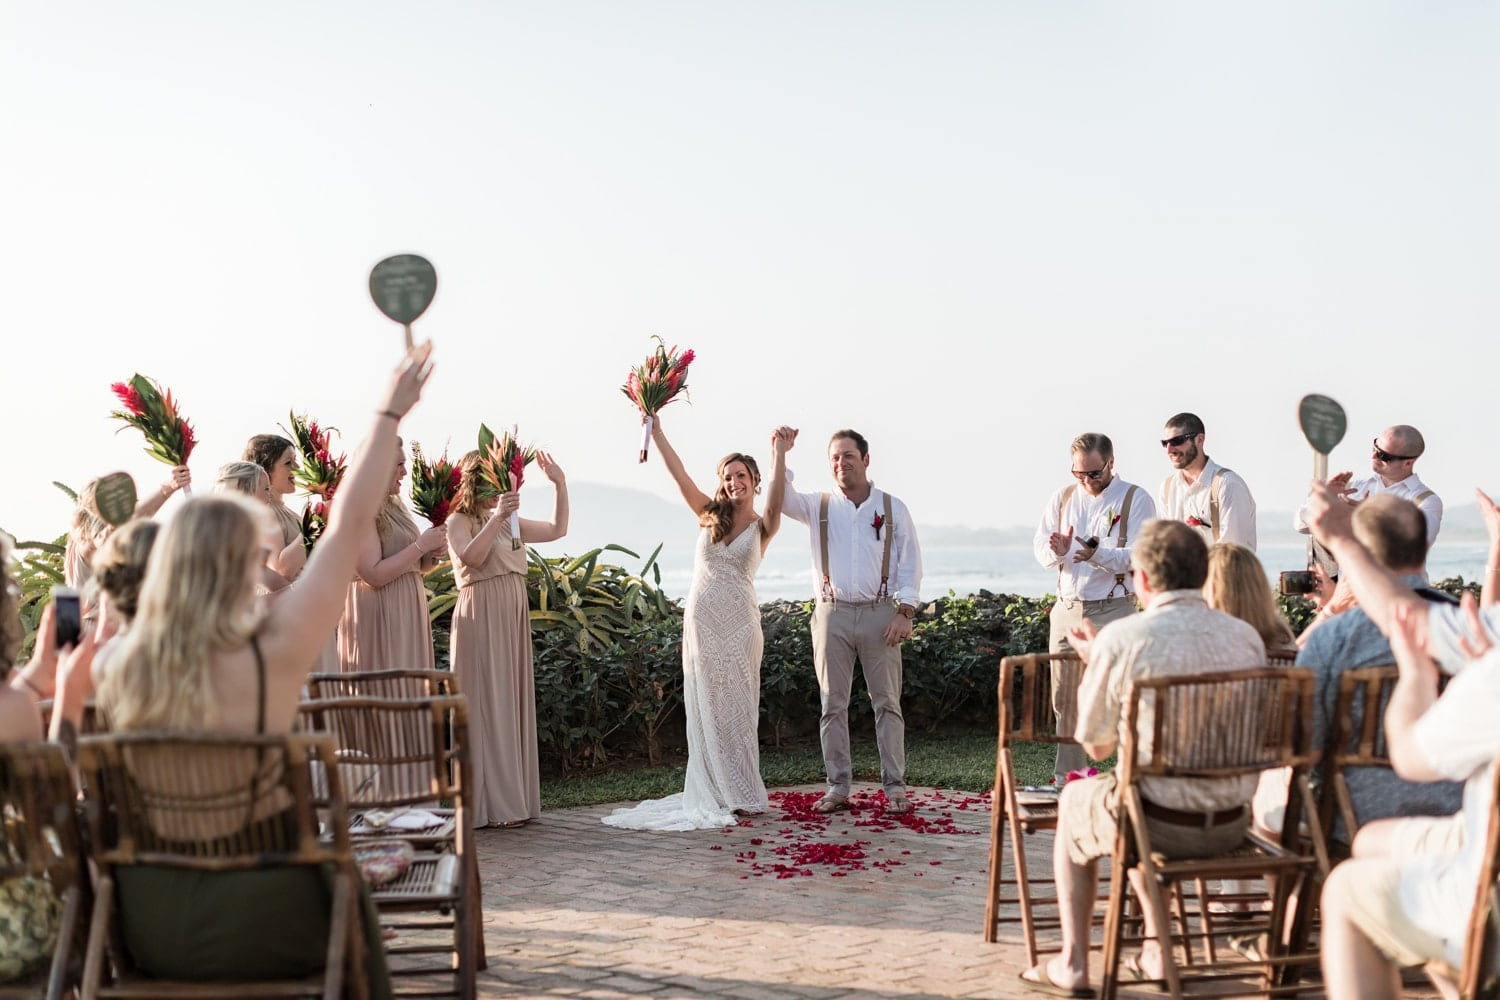 Everyone is celebrating after the bride and groom get married at Tamarindo Diria Resort.